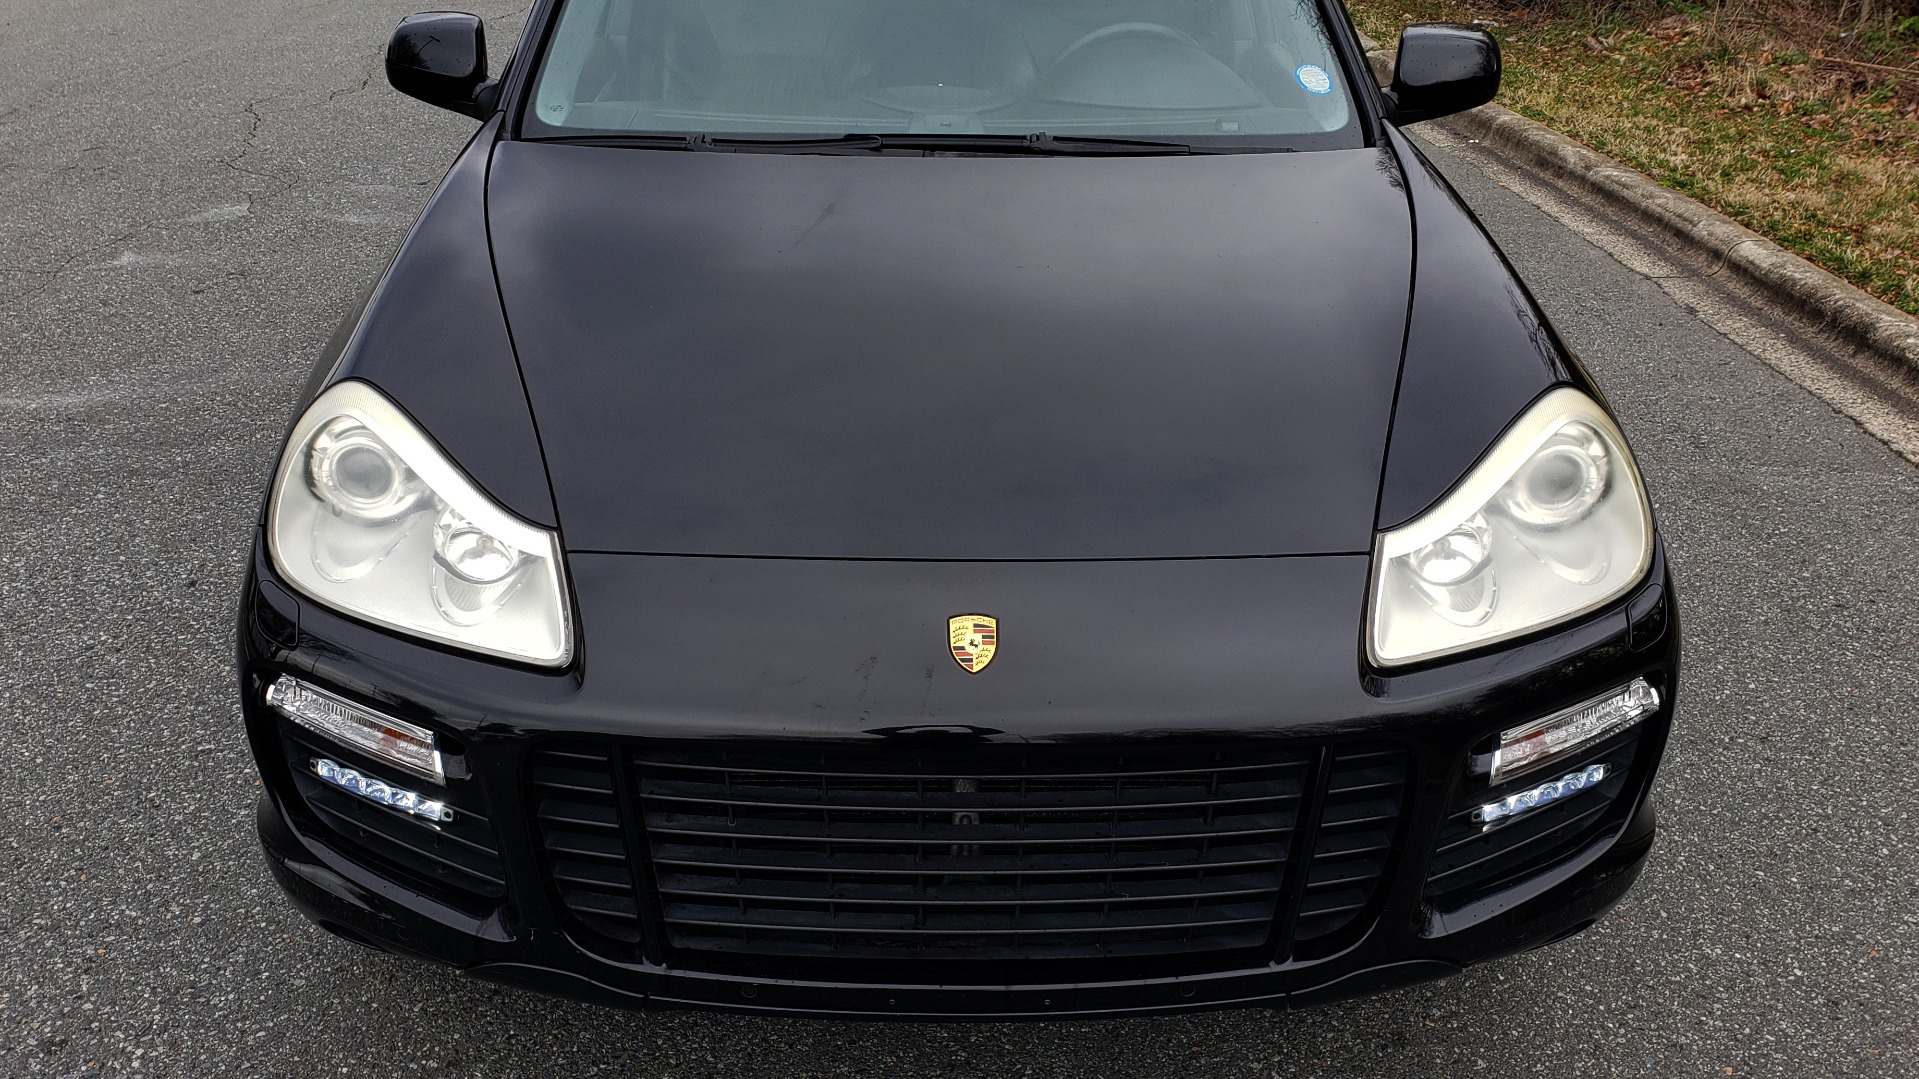 Used 2008 Porsche CAYENNE GTS TIPTRONIC / NAV / SUNROOF / REARVIEW / BOSE for sale Sold at Formula Imports in Charlotte NC 28227 16